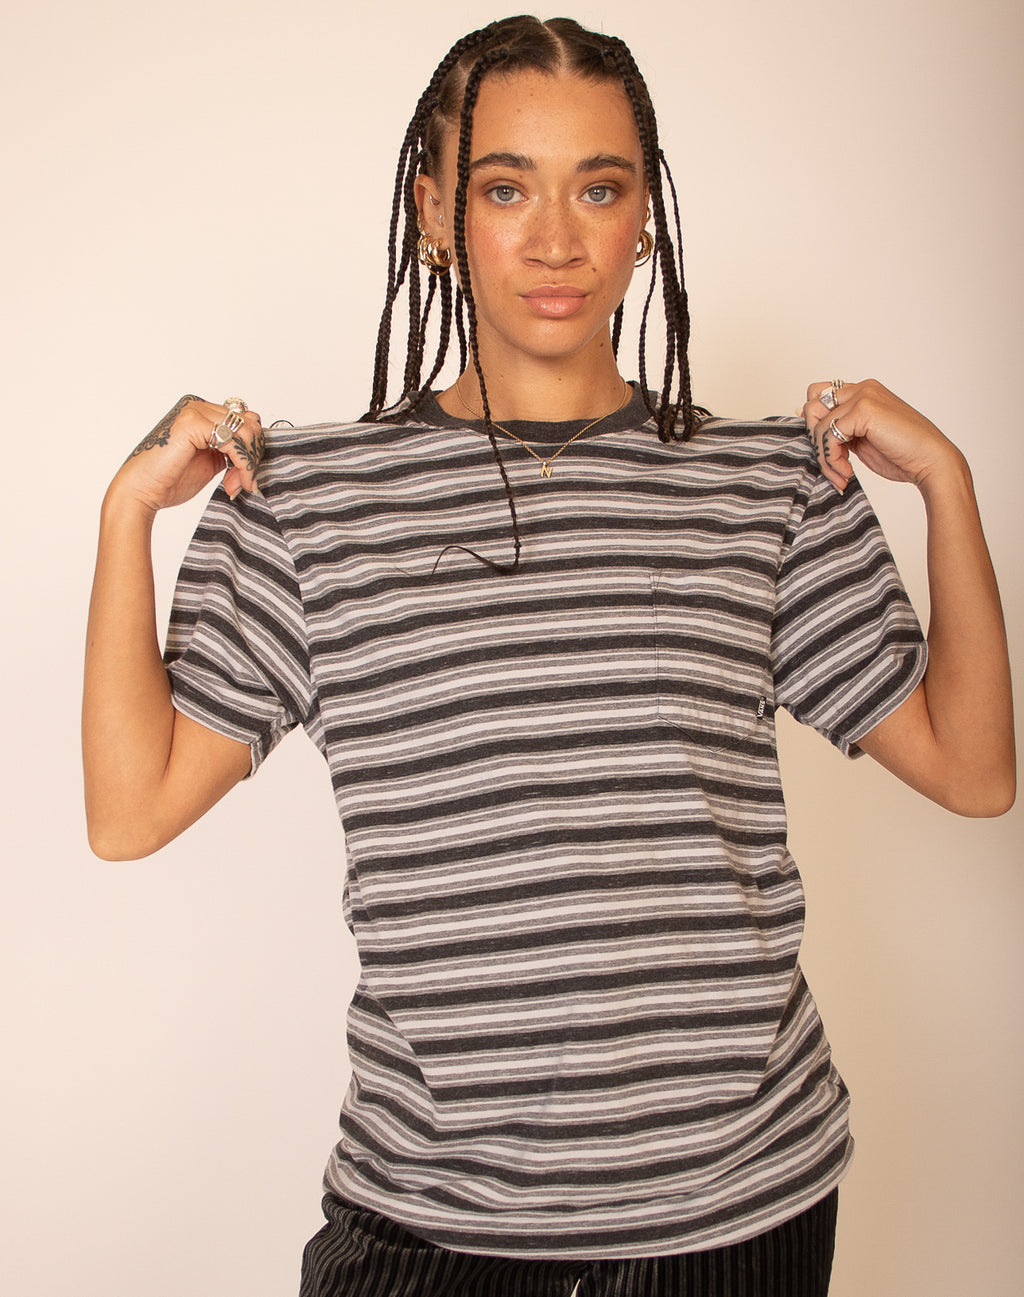 VANS GREY STRIPED T-SHIRT